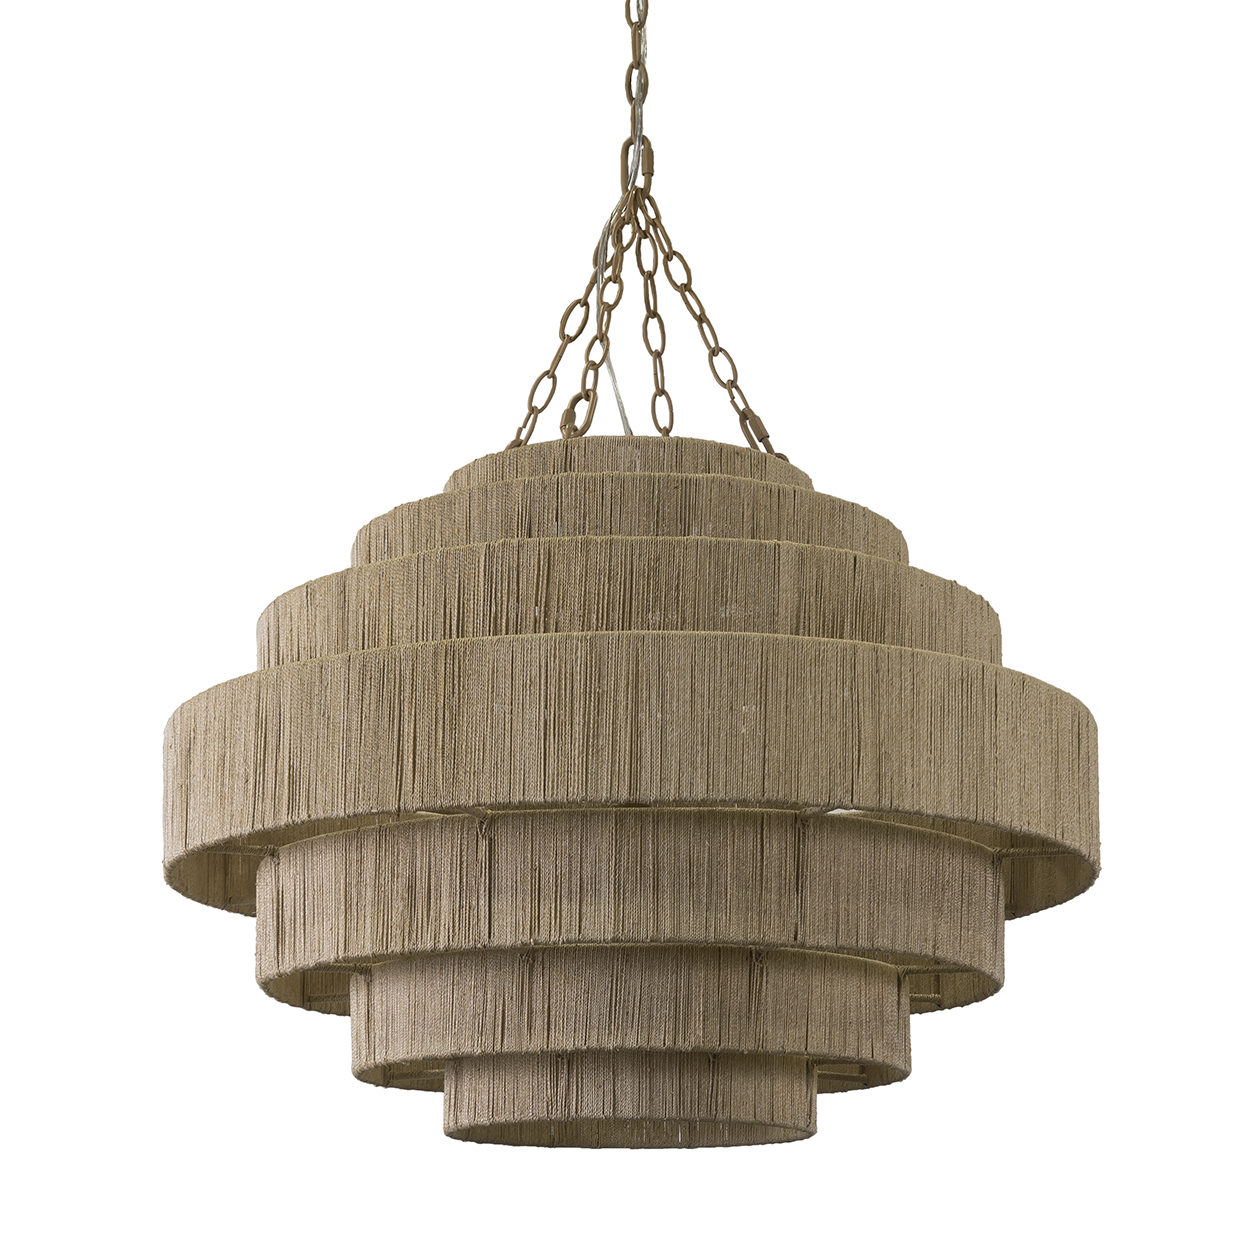 Everly chandelier, abaca rope and metal, 31in diamond x 22inH x 10ft chain,  contact us